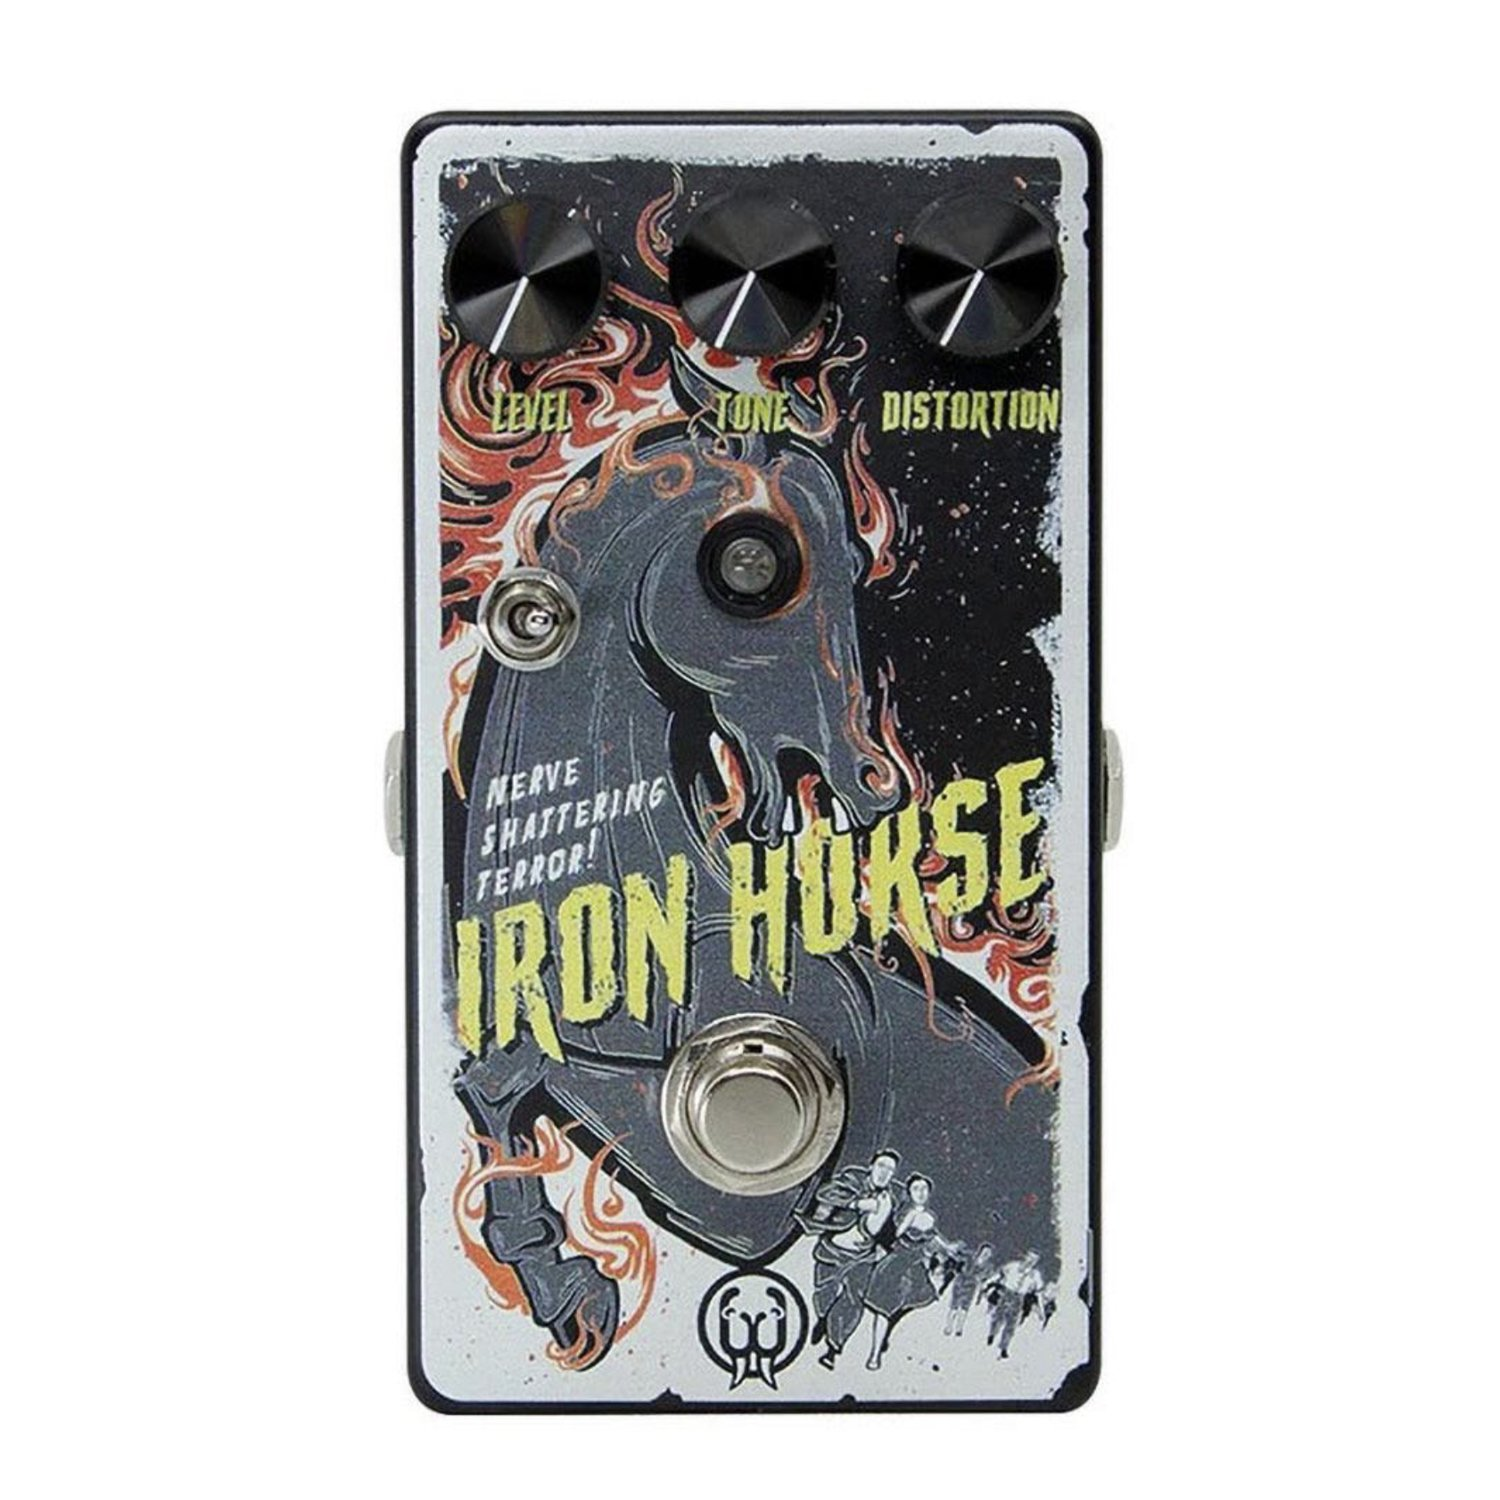 Walrus Audio Iron Horse V2 - Halloween 2019 Limited Edition